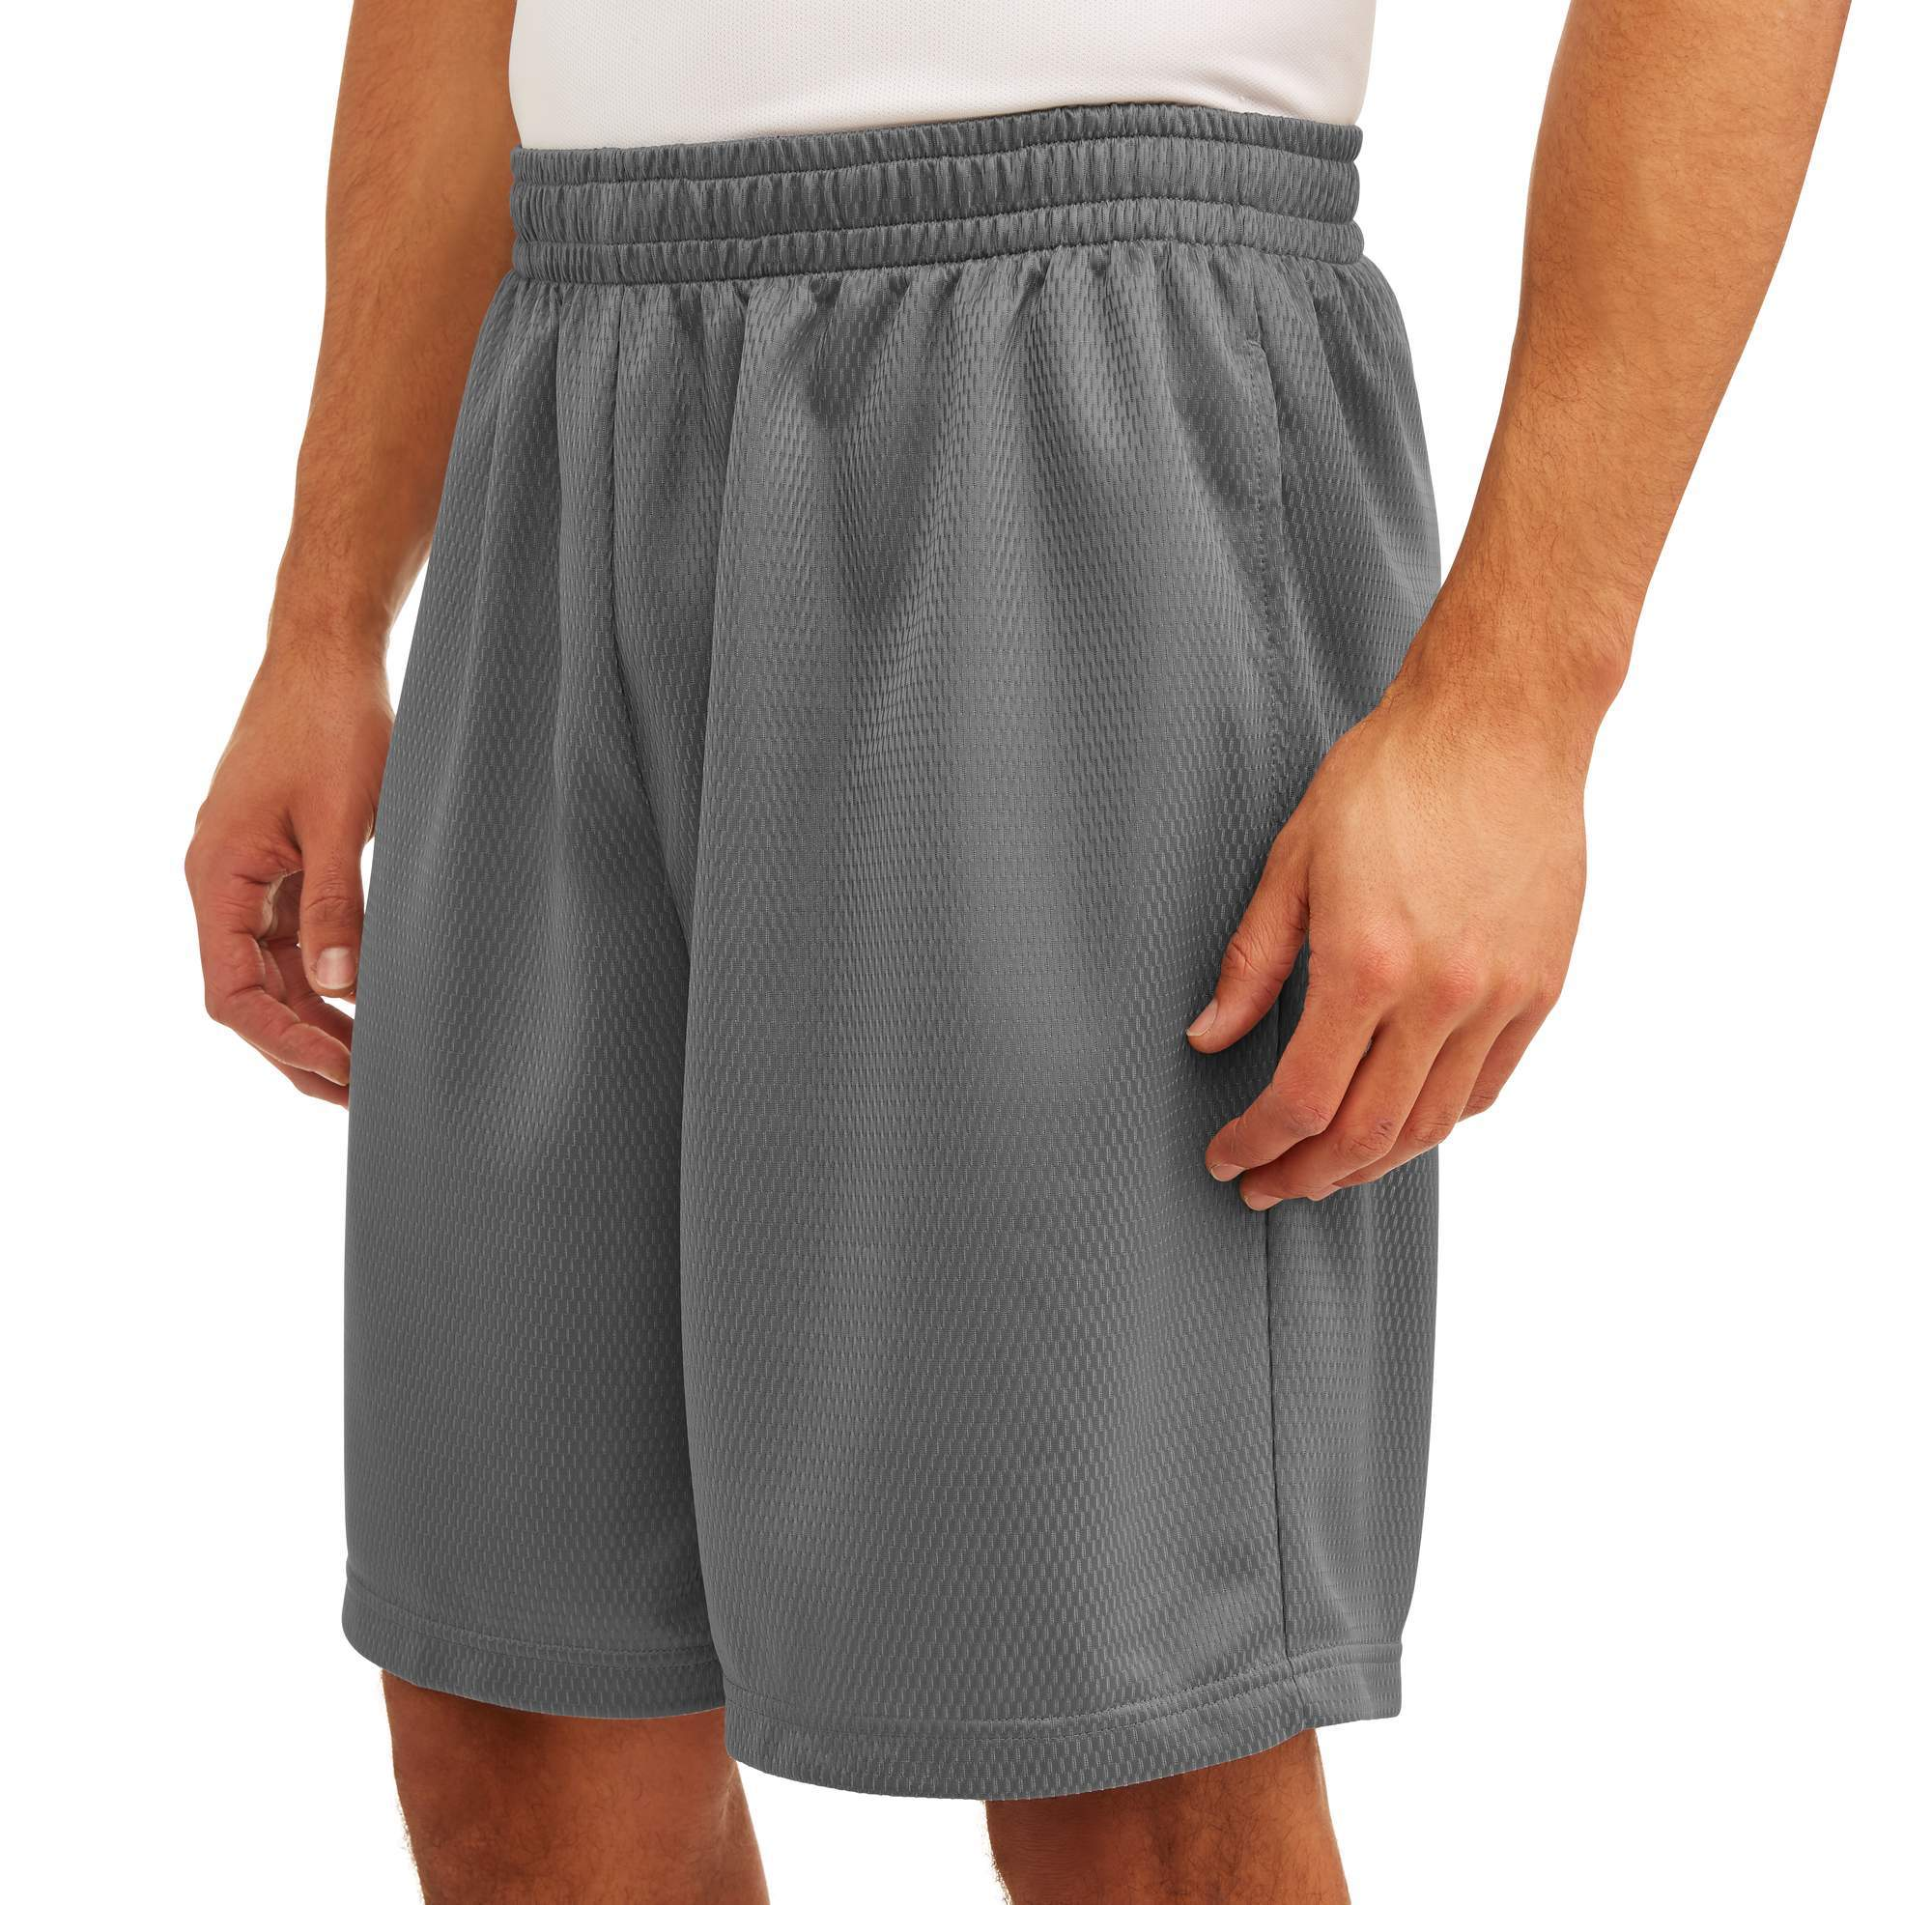 Athletic Works Men's and Big Men's 9″ Dazzle Shorts, up to Size 5XL (Walmart)